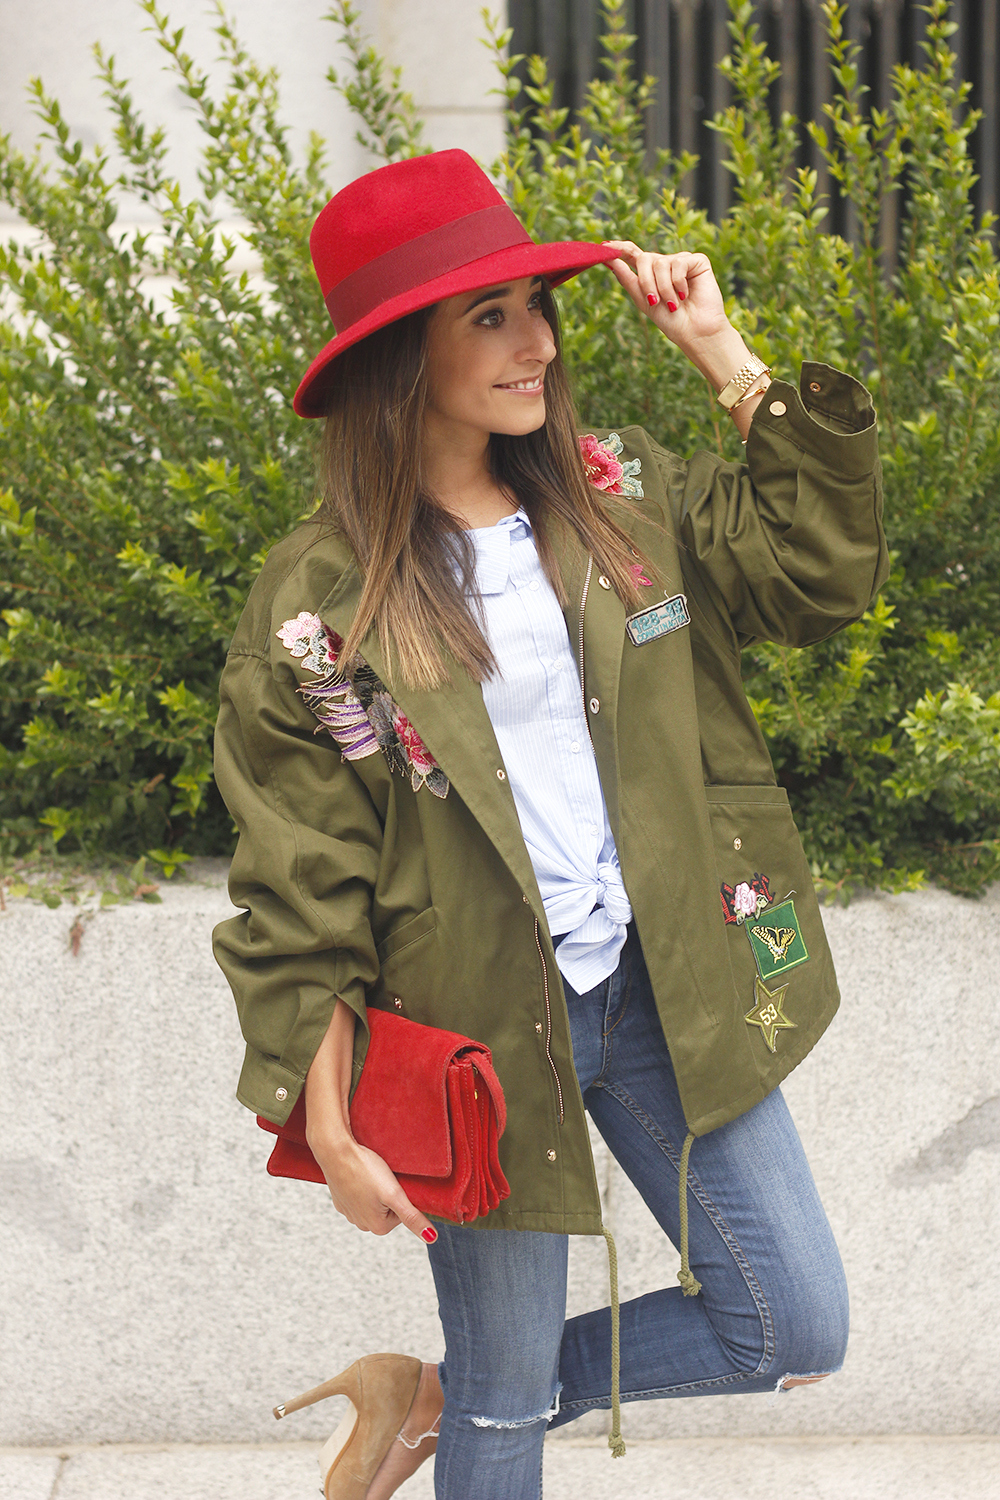 Green Parka Jeans nude heels red uterqüe hat style fashion05